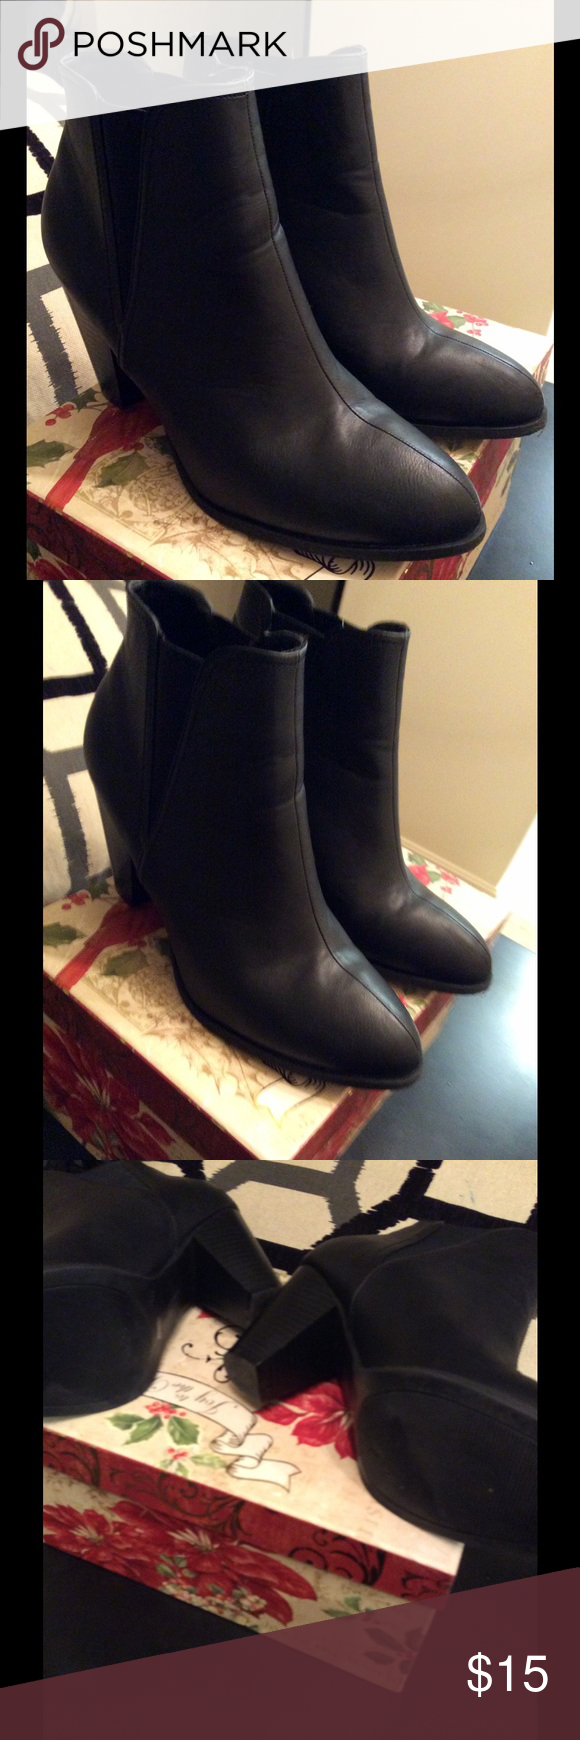 Bamboo black leather shoes with stretch sides It is a very nice shoes 👠 for any occasion.. it is in a beautiful condition. Bamboo Shoes Ankle Boots & Booties